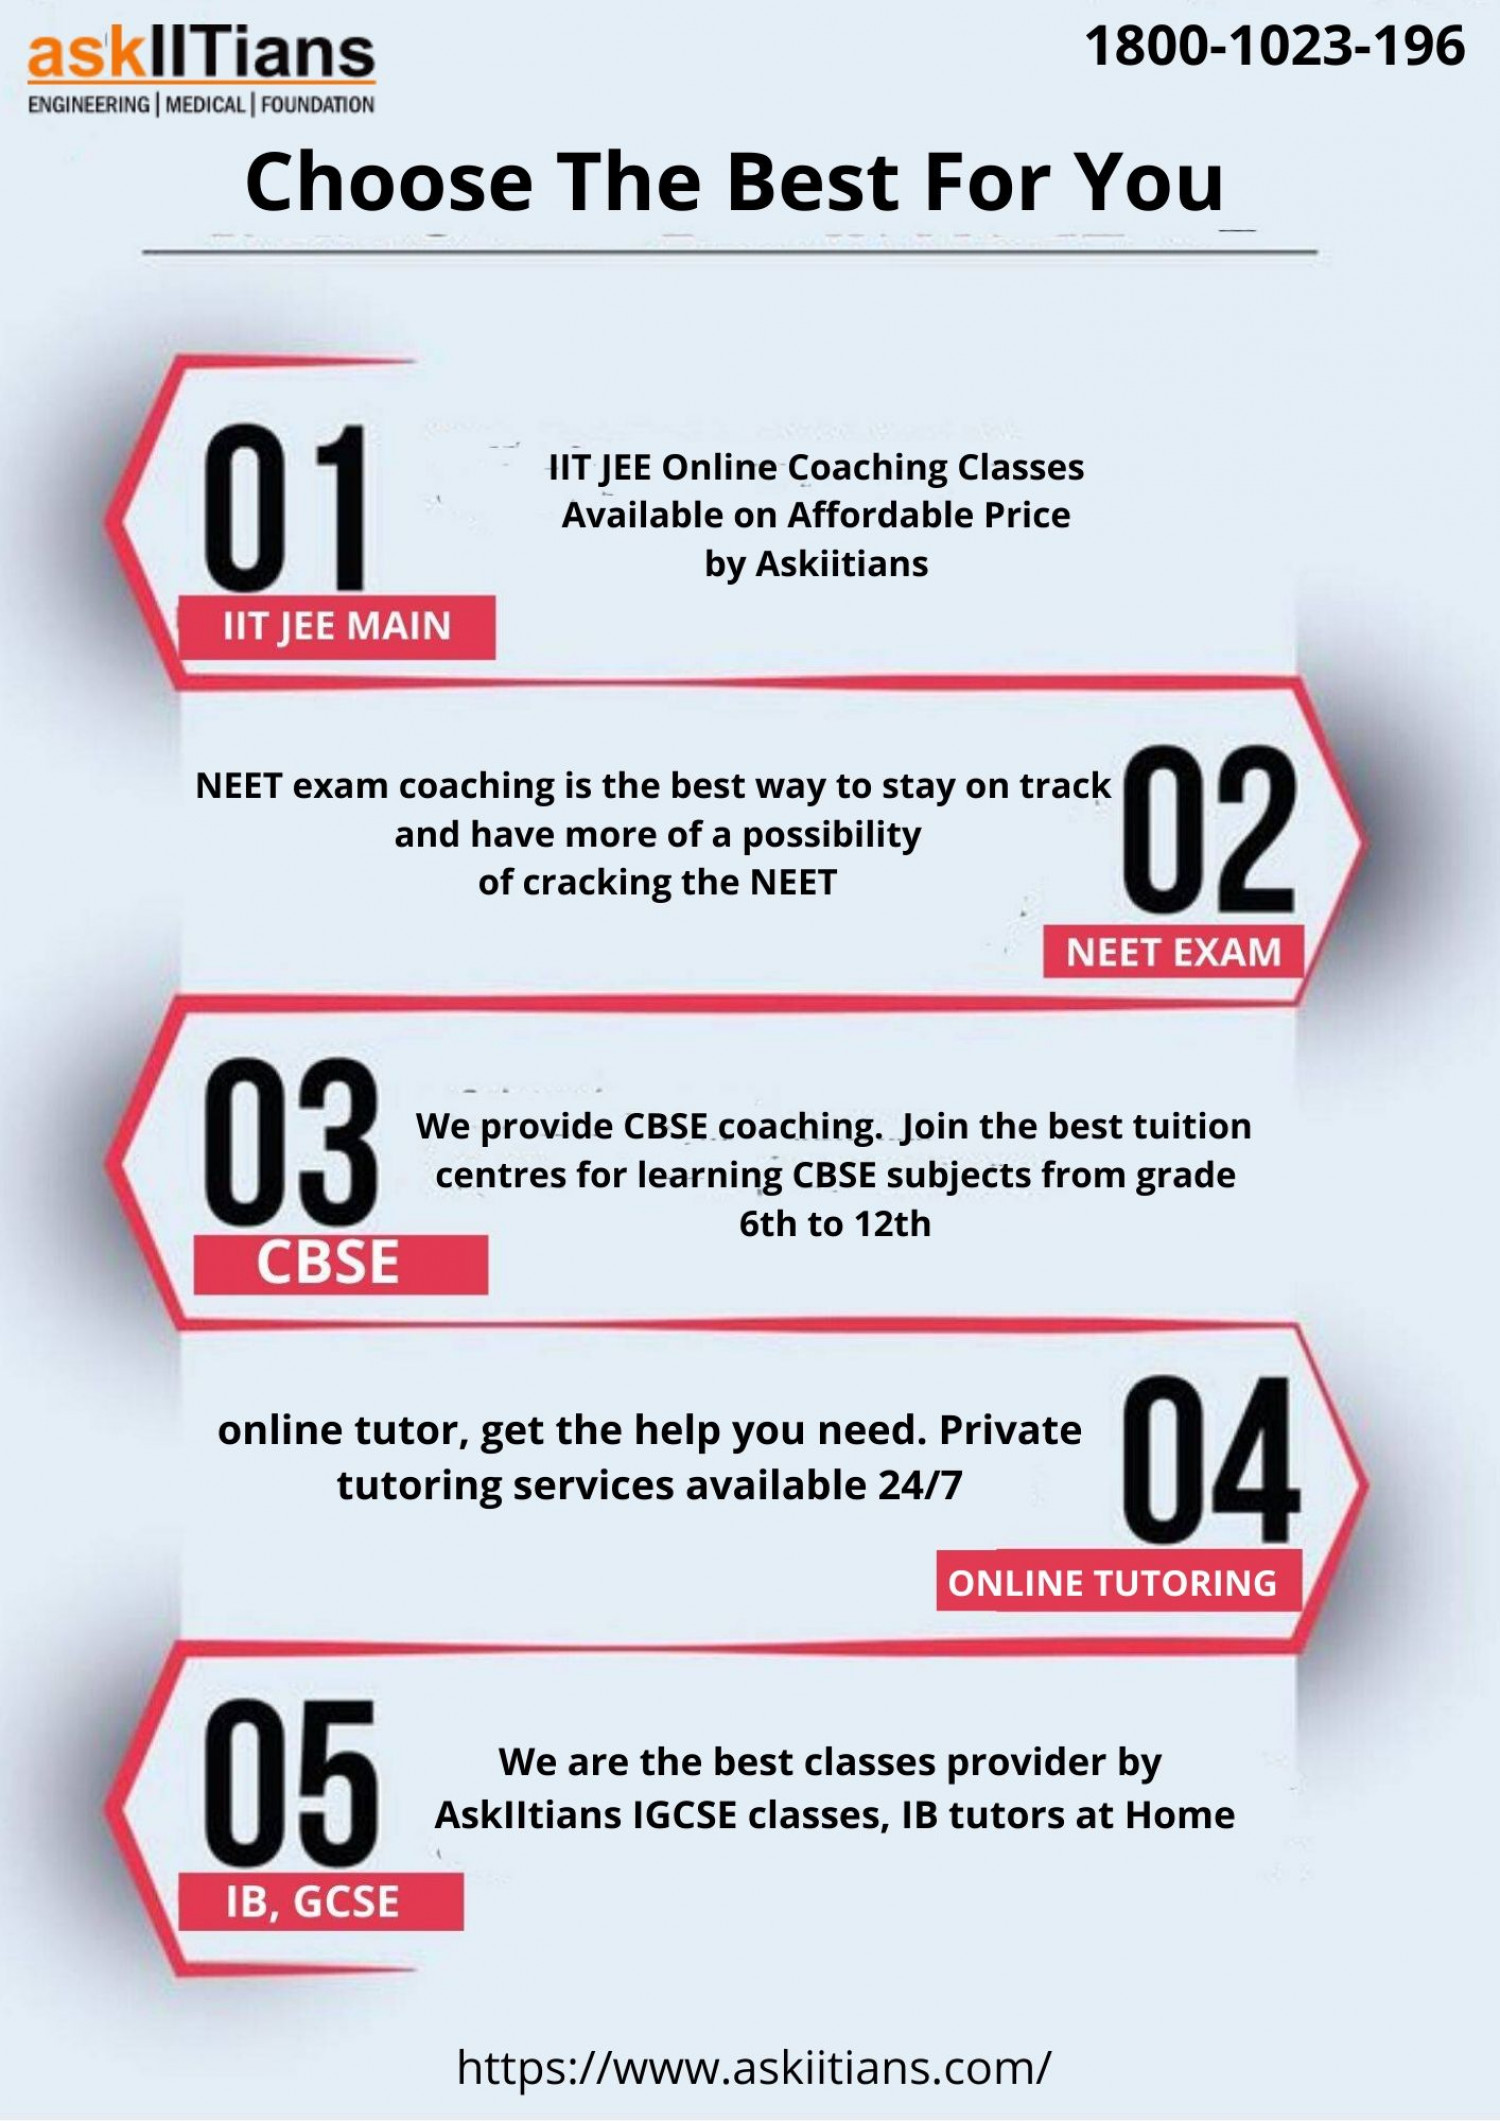 Choose the best for you by AskIItians Infographic